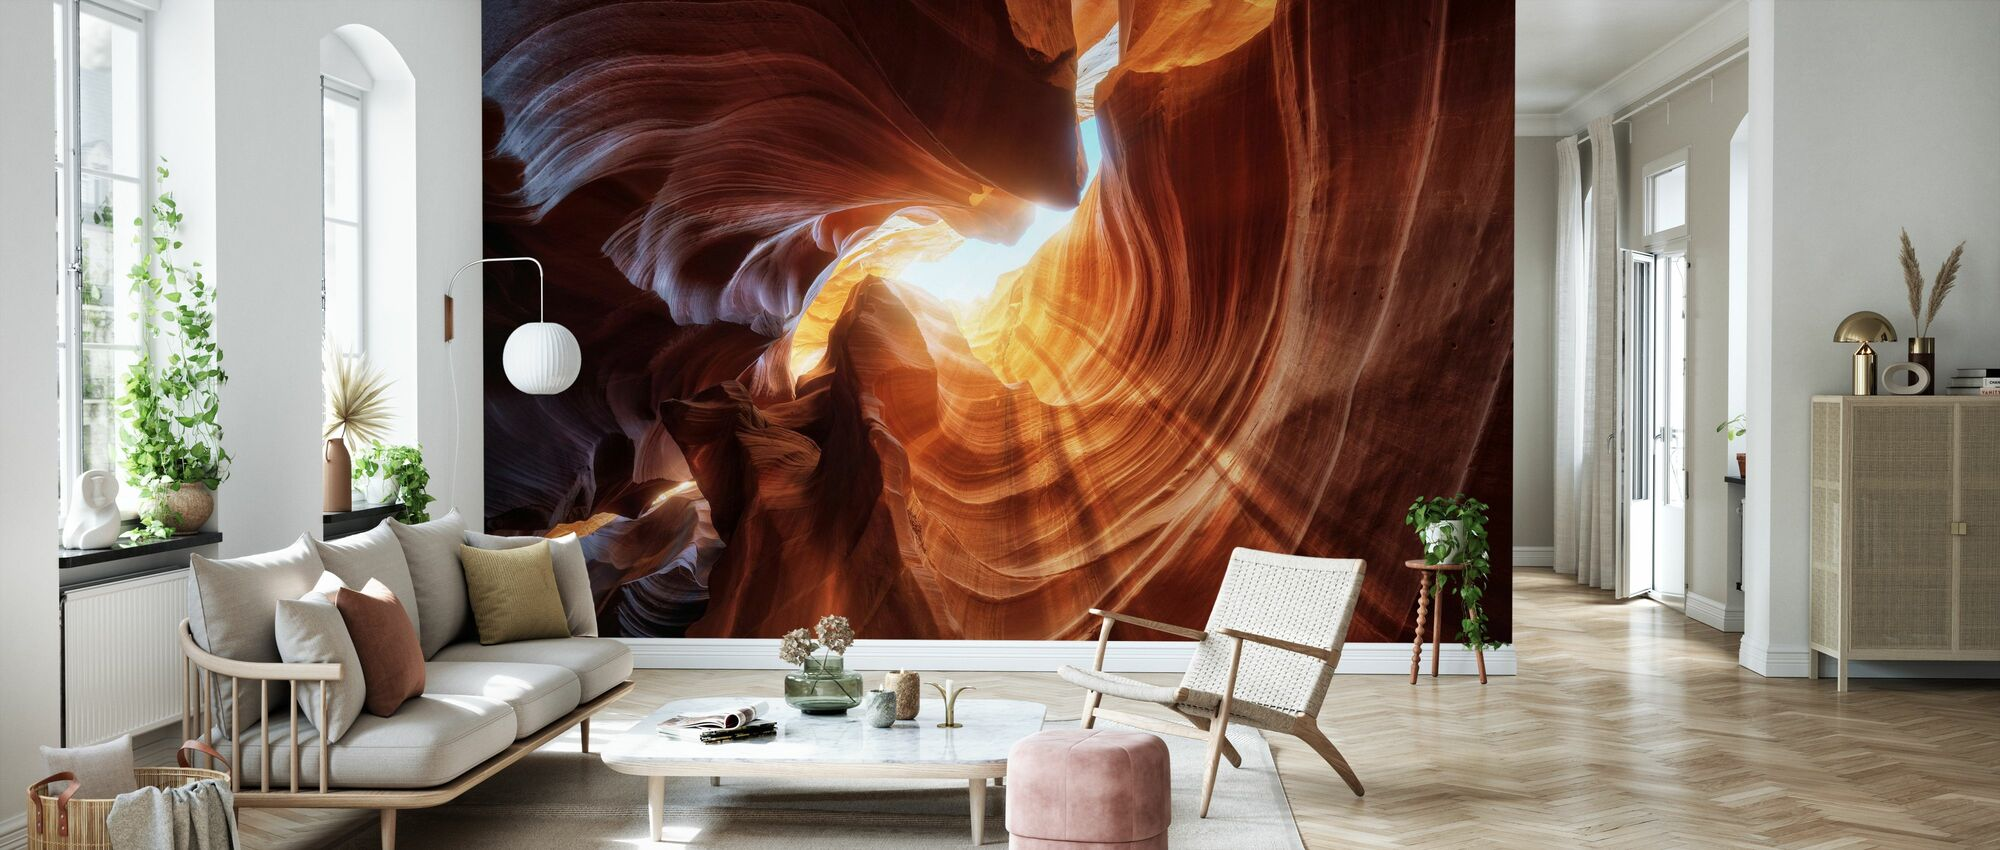 Antelope Hole - Wallpaper - Living Room